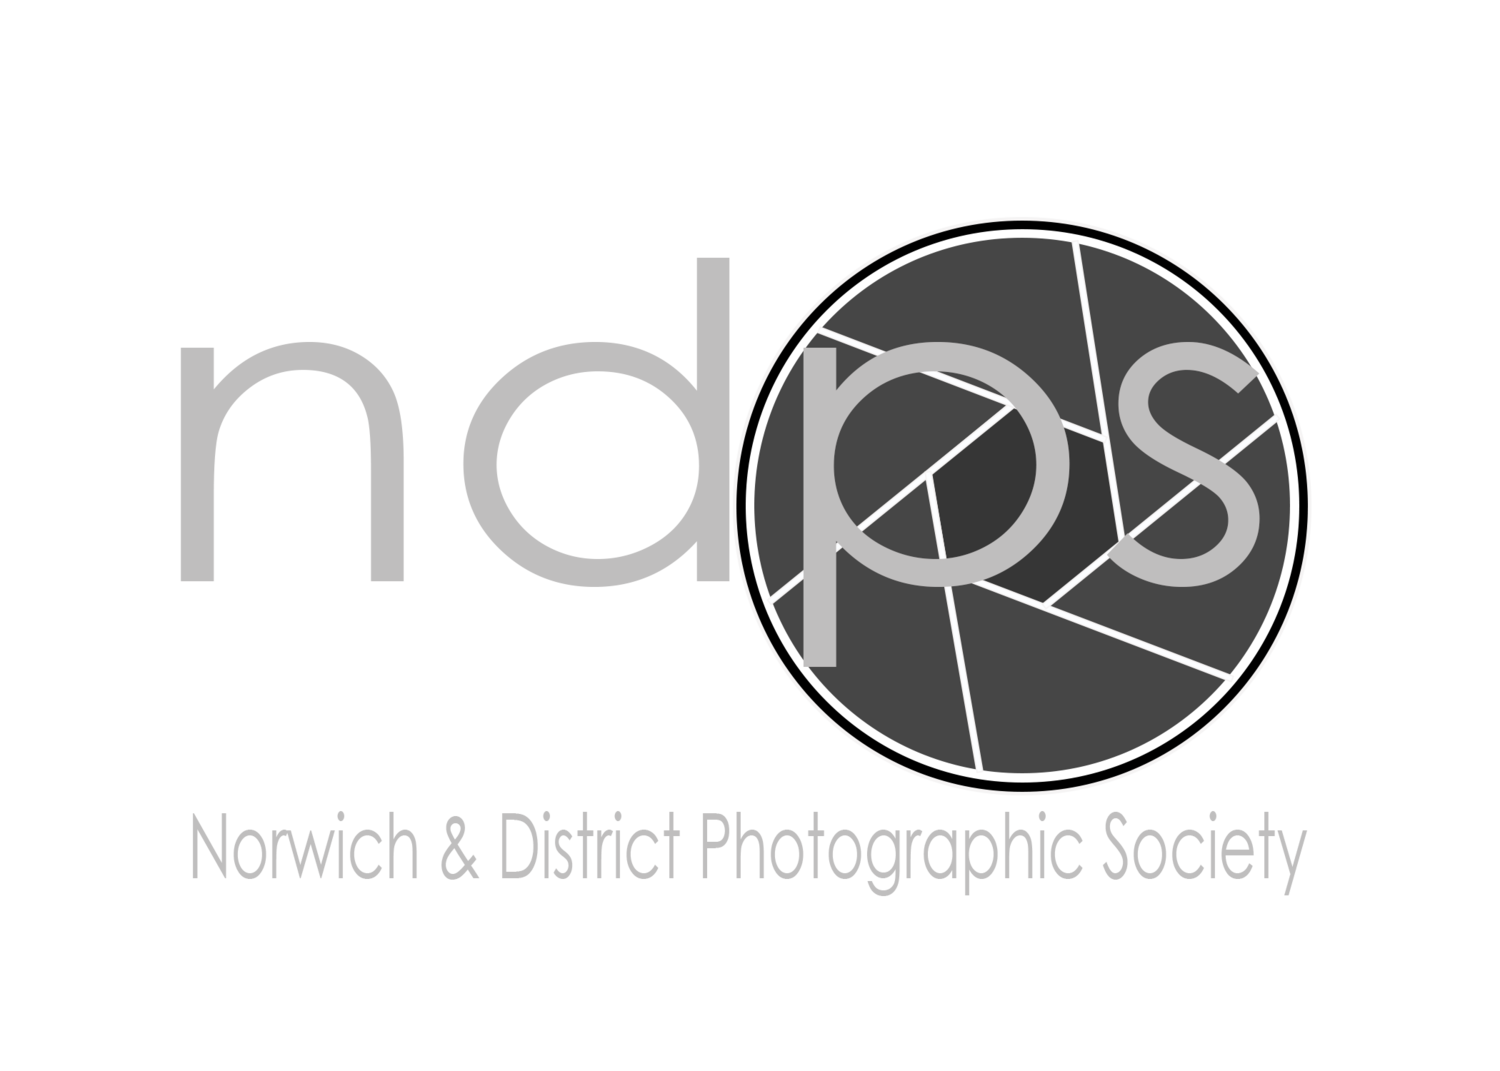 NDPS | Norwich & District Photographic Society